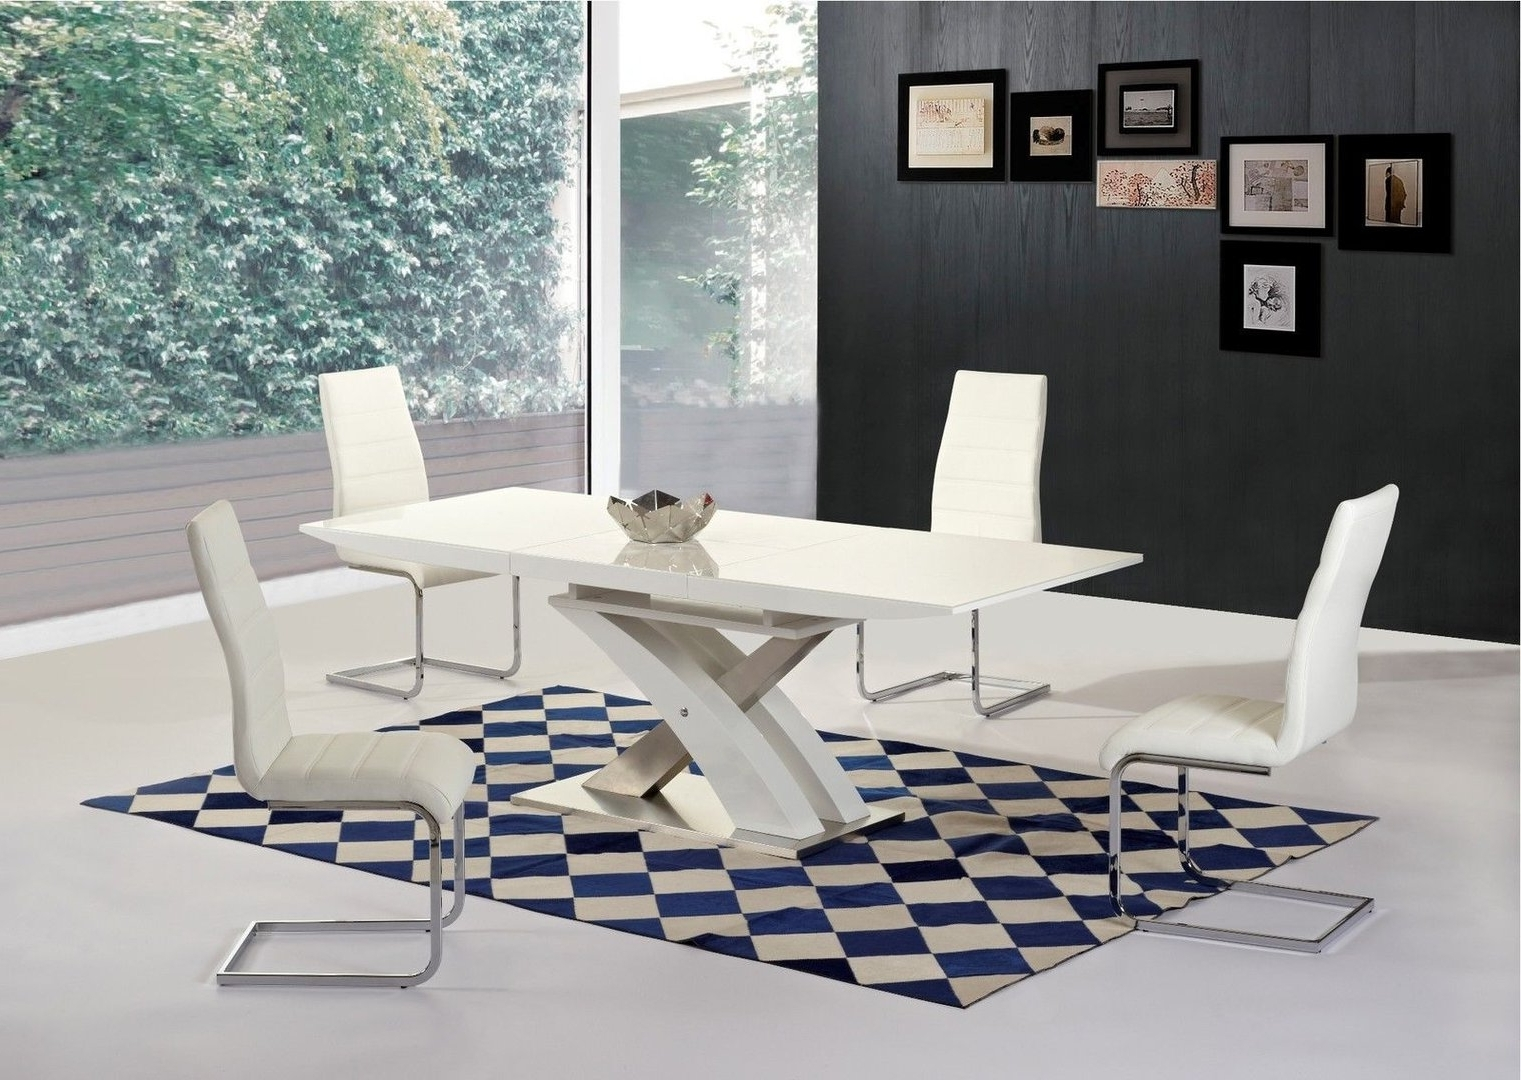 High Gloss Extendable Dining Tables Within Widely Used White High Gloss / Glass Extending Dining Table & 6 Chairs (View 11 of 25)